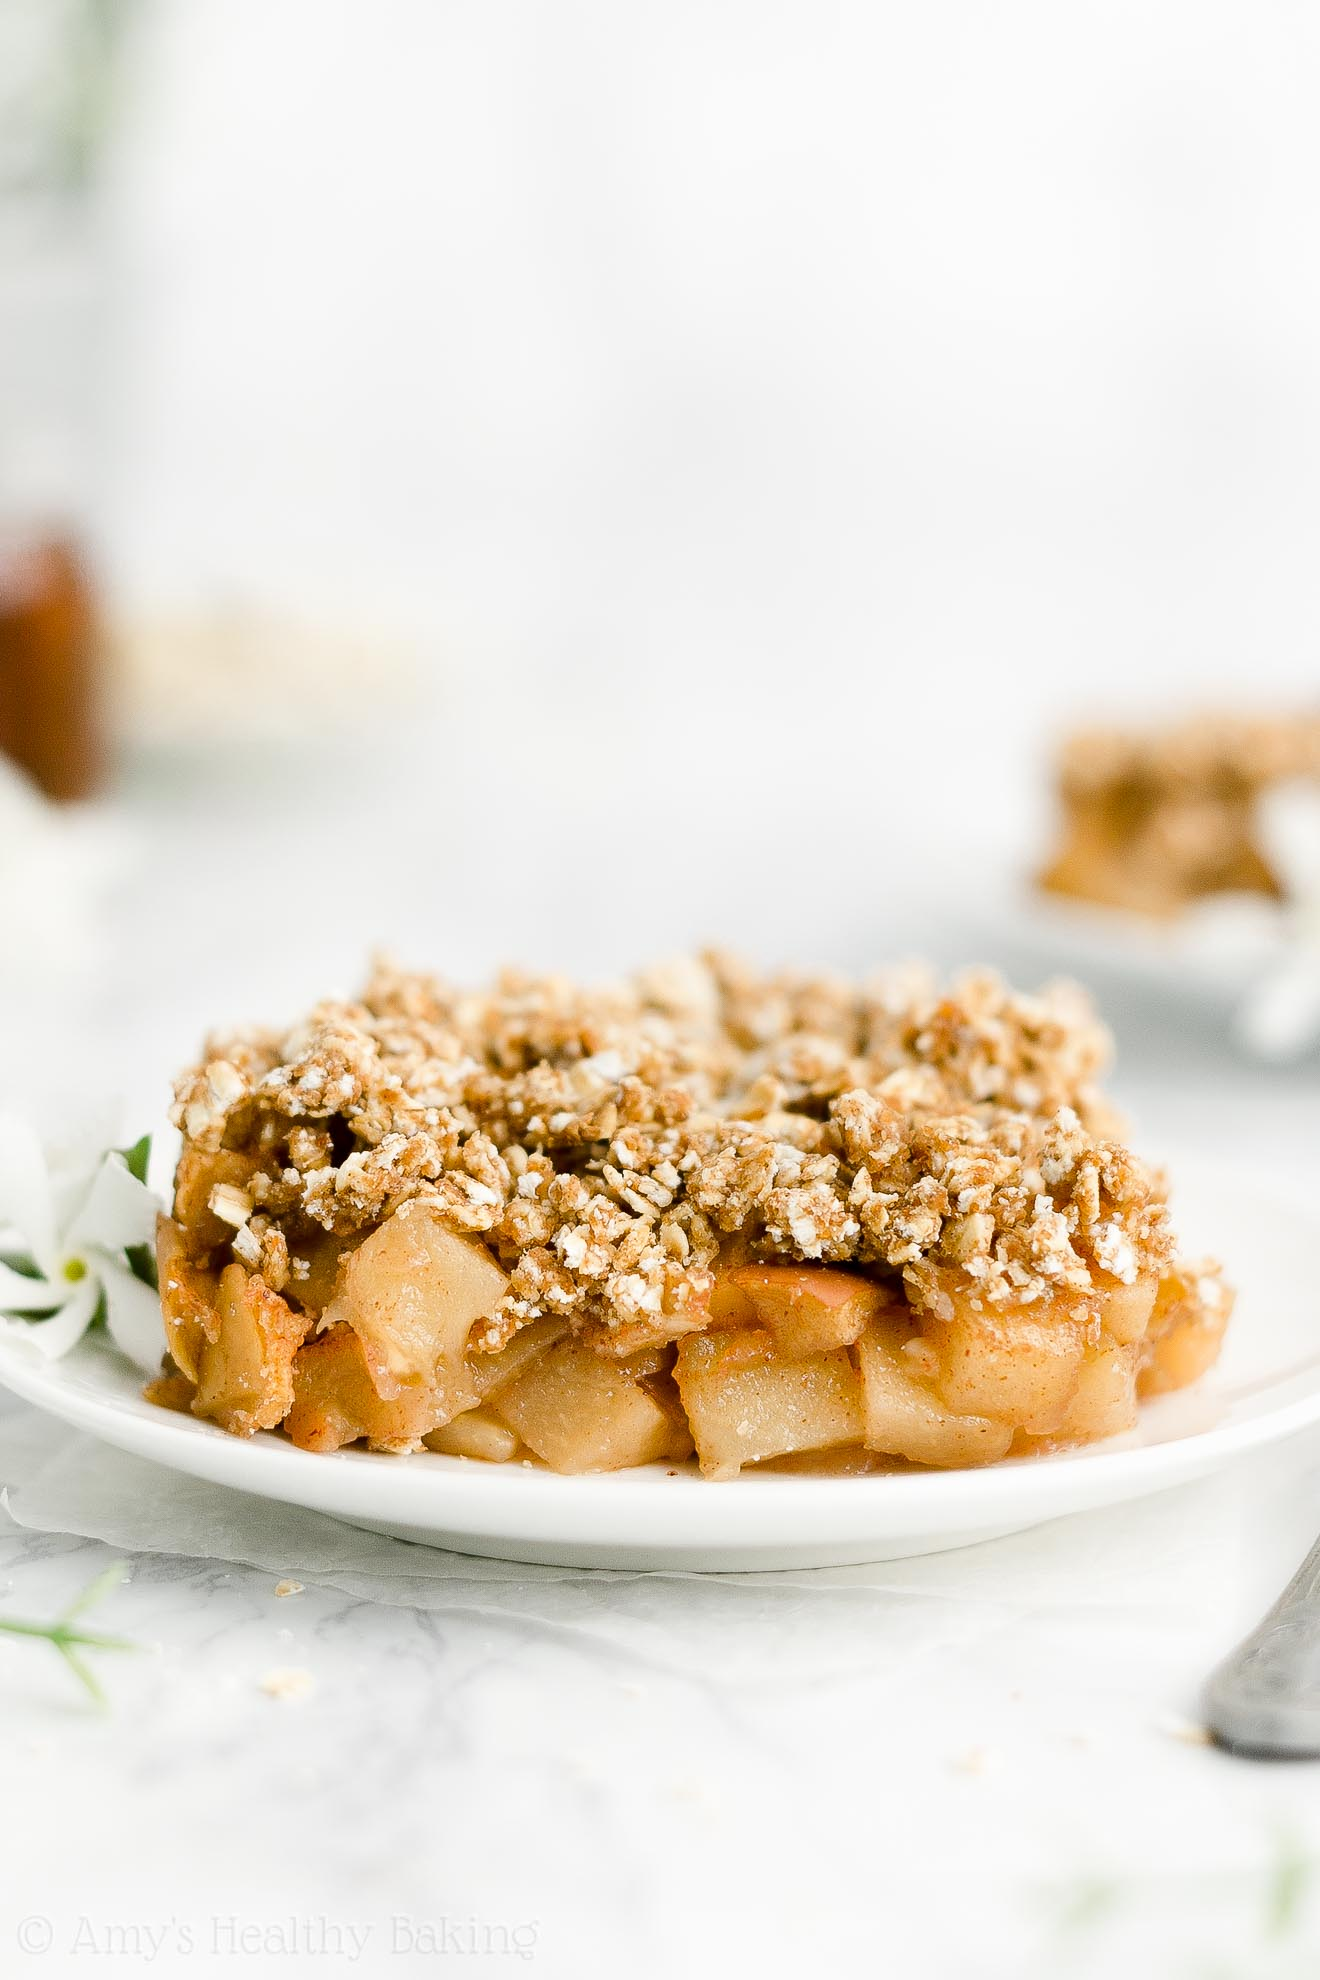 Best Easy Healthy Clean Eating Whole Wheat Low Sugar Apple Crisp No Butter